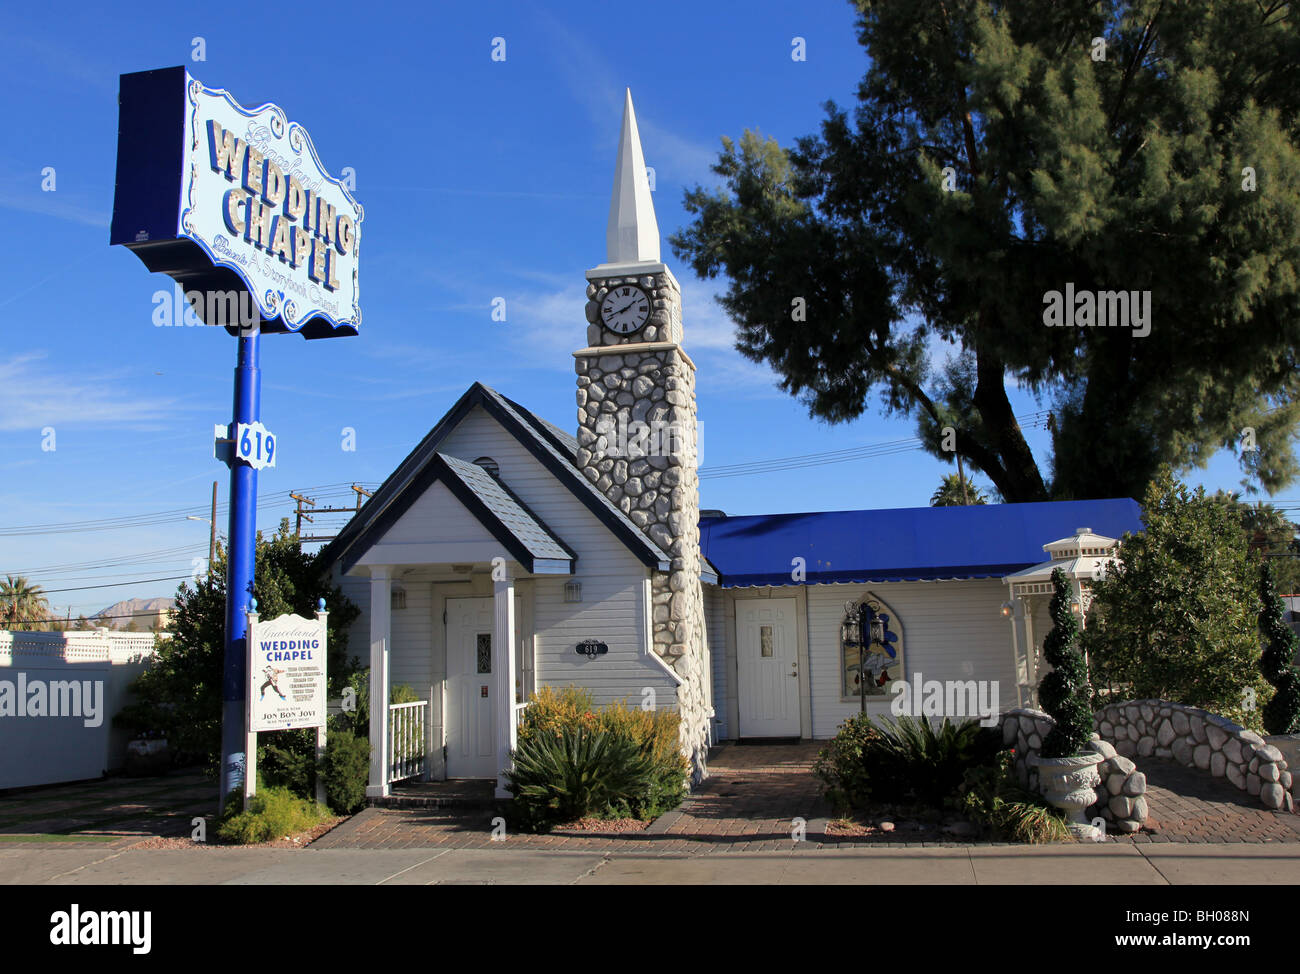 Graceland Wedding Chapel.Graceland Wedding Chapel Las Vegas Nevada Usa Stock Photo